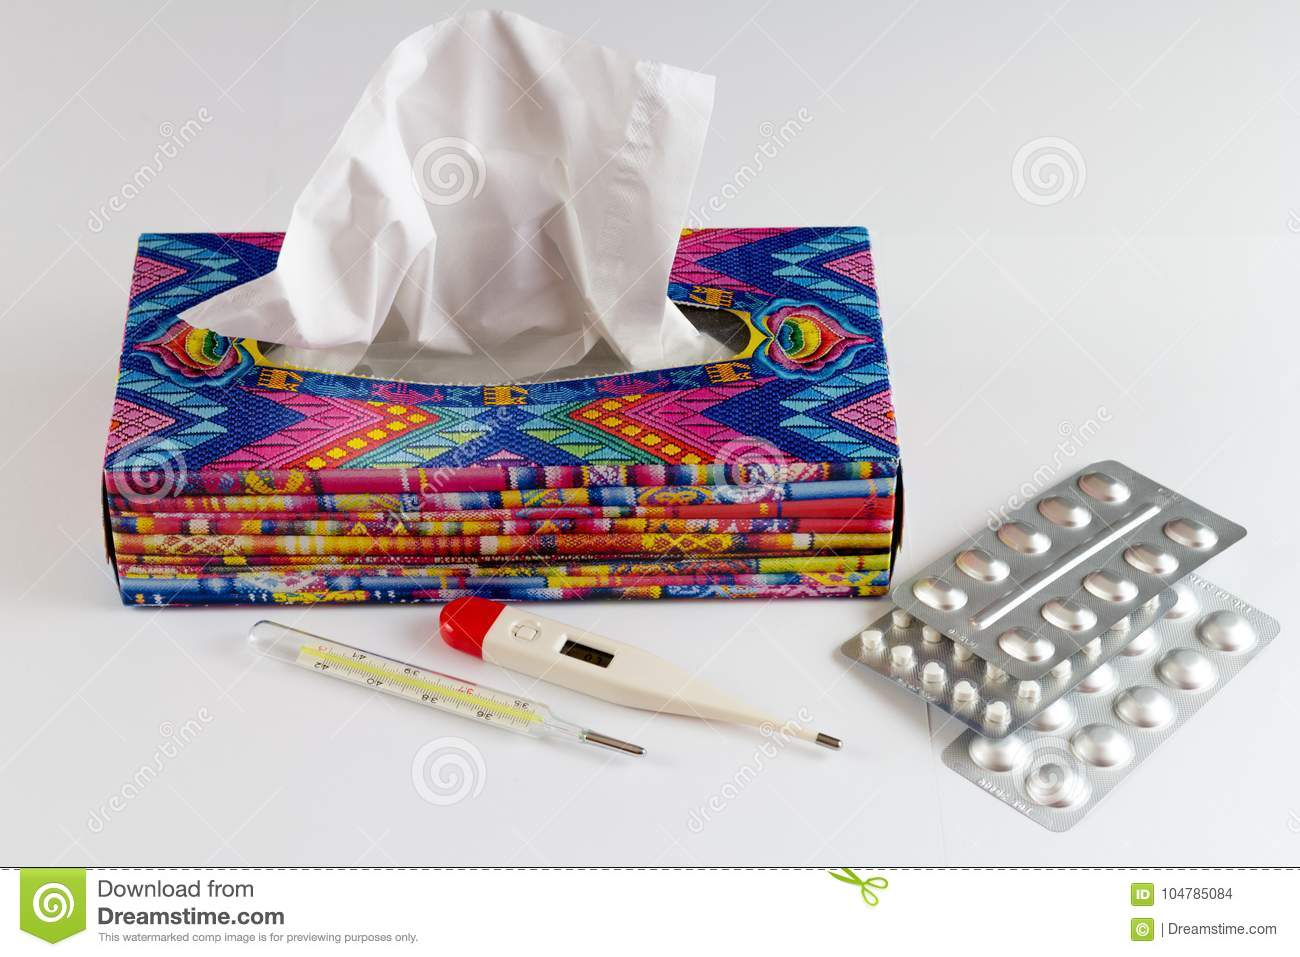 Disposable hygienics wipes in a colored box